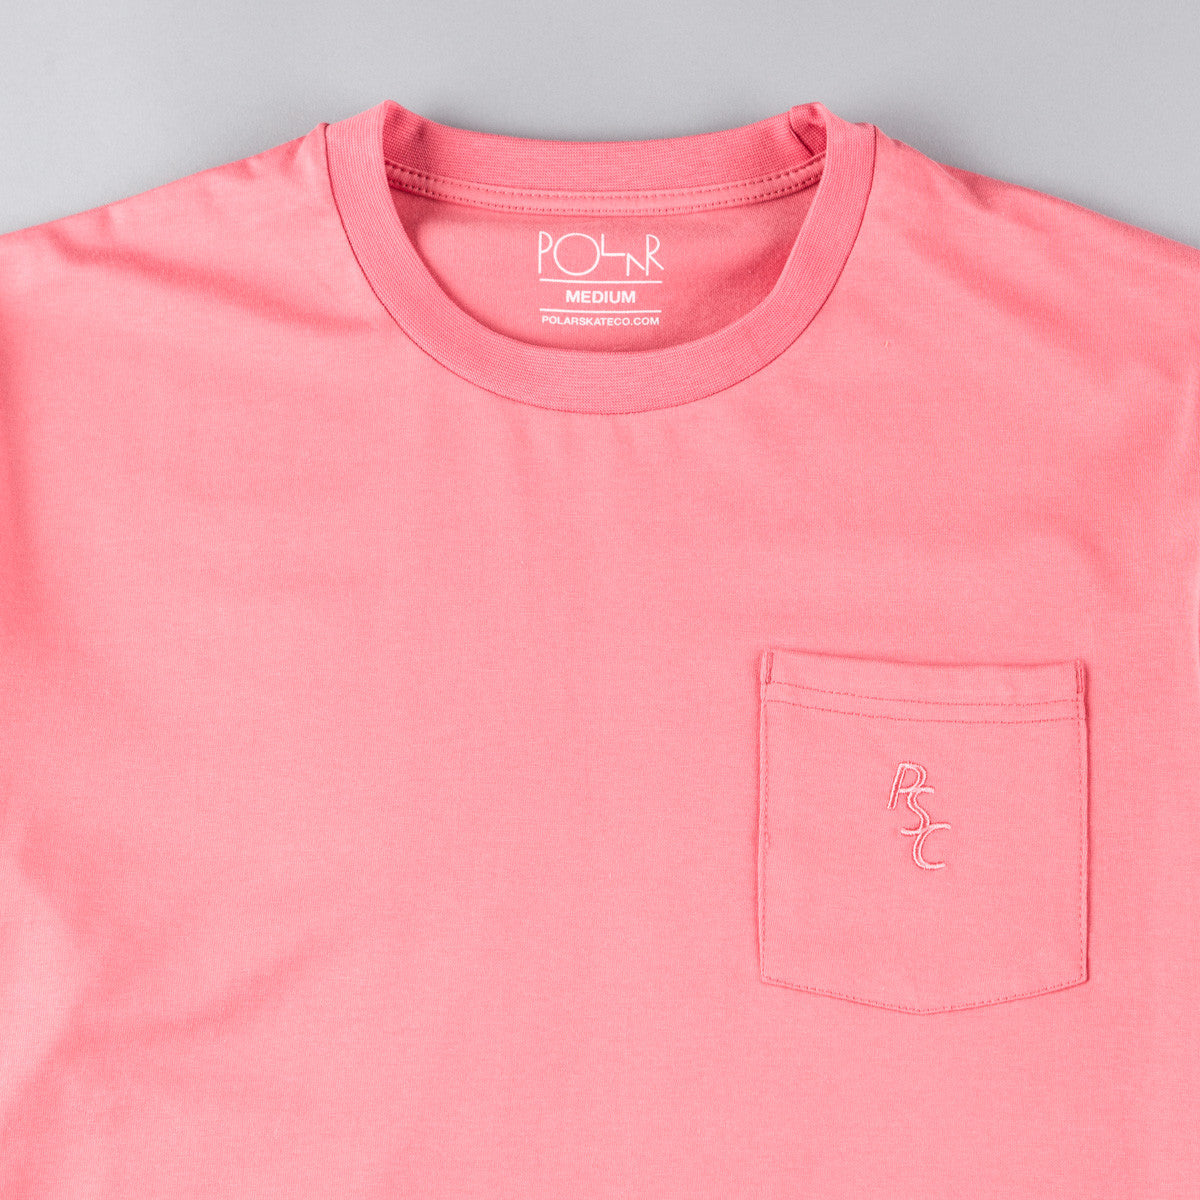 Polar PSC Pocket T-Shirt - Coral